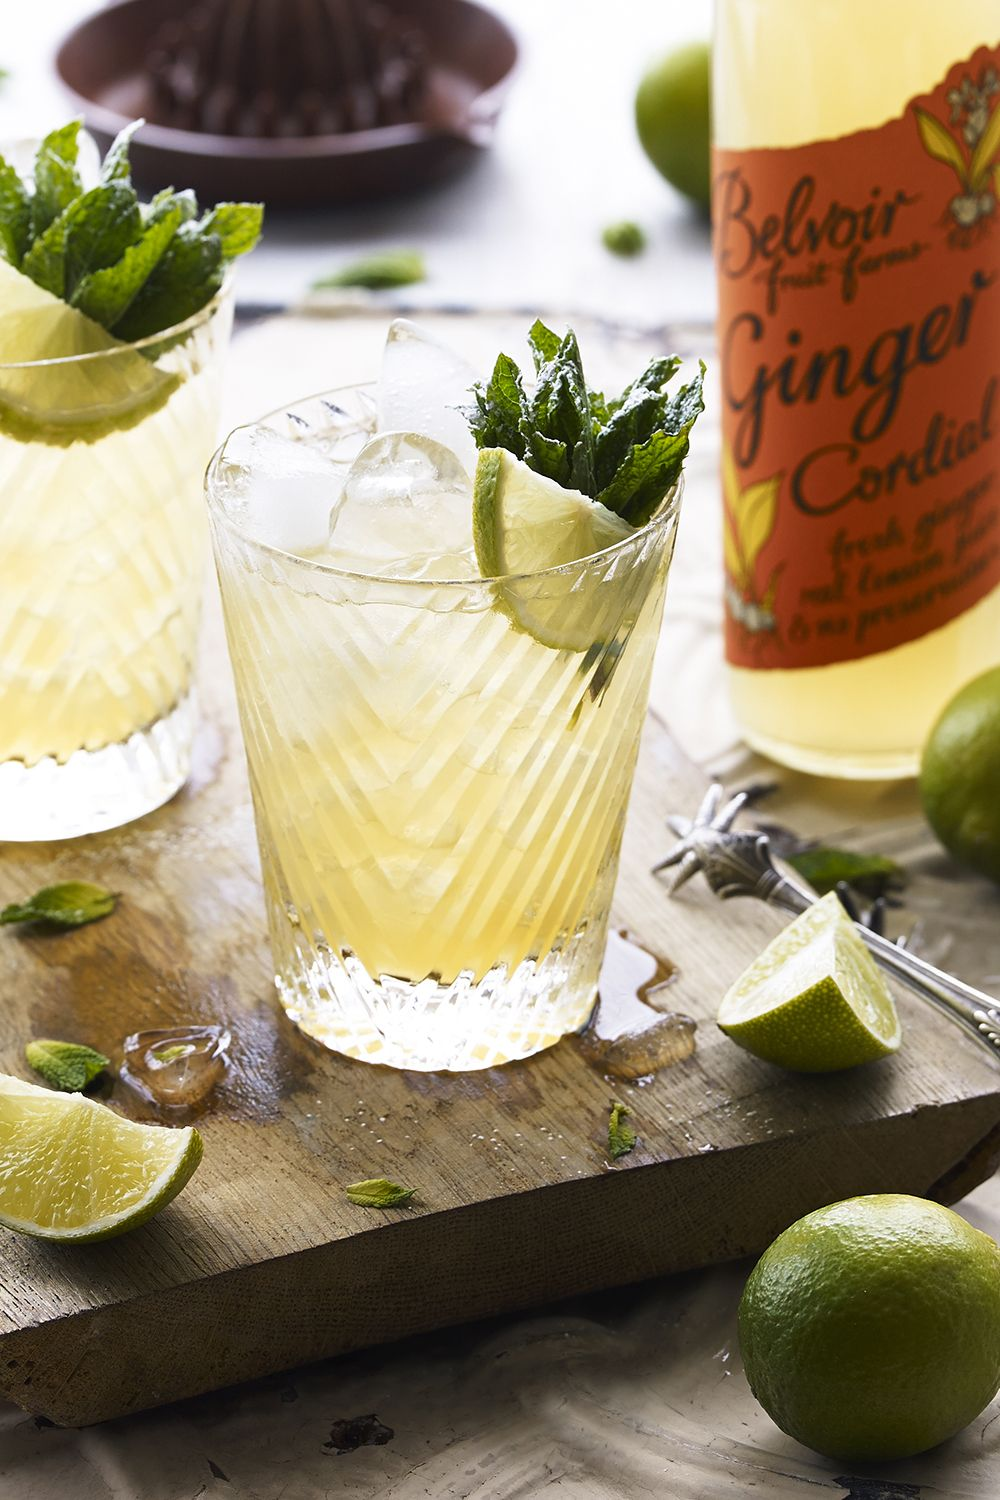 "<p>This refreshing drink features ginger, mint, and lime—perfect alongside a slice of apple pie. </p><p><strong data-redactor-tag=""strong"" data-verified=""redactor"">Ingredients:</strong> </p><p>2 Lime Wedges</p><p>5 Mint Leaves</p><p>1/2 fl oz Belvoir Ginger beer </p><p>1.5 fl oz White Rum</p><p>1.5 fl oz Apple Juice</p><p><strong data-redactor-tag=""strong"" data-verified=""redactor"">Directions:</strong></p><p>Mix in a highball glass with cubed ice; garnish with fresh or candied ginger.</p>"